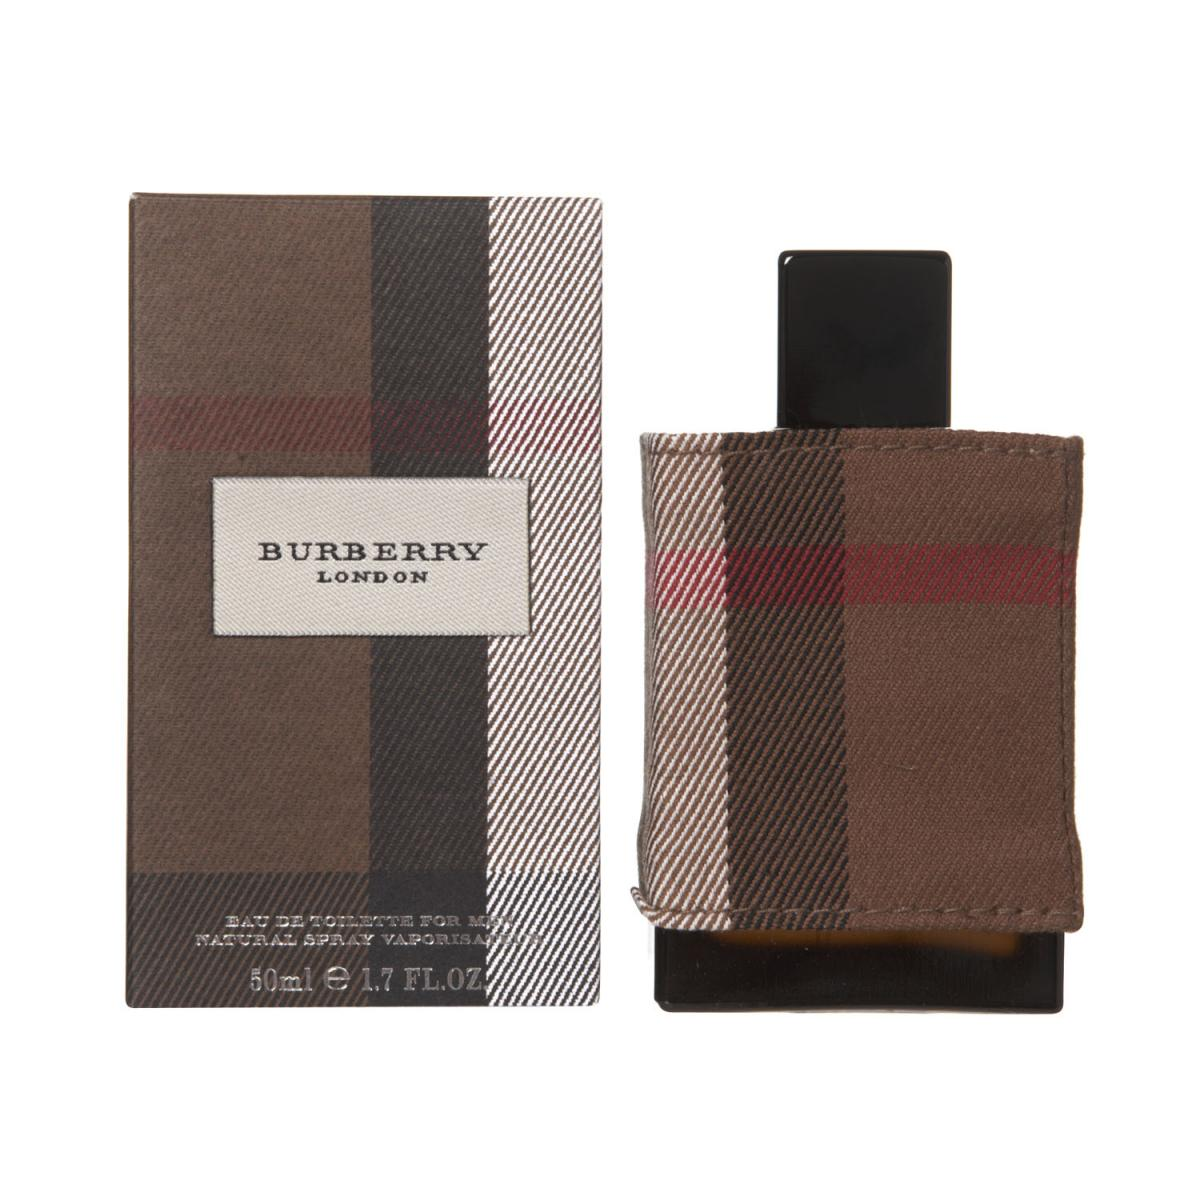 Парфюми Burberry London за мъже